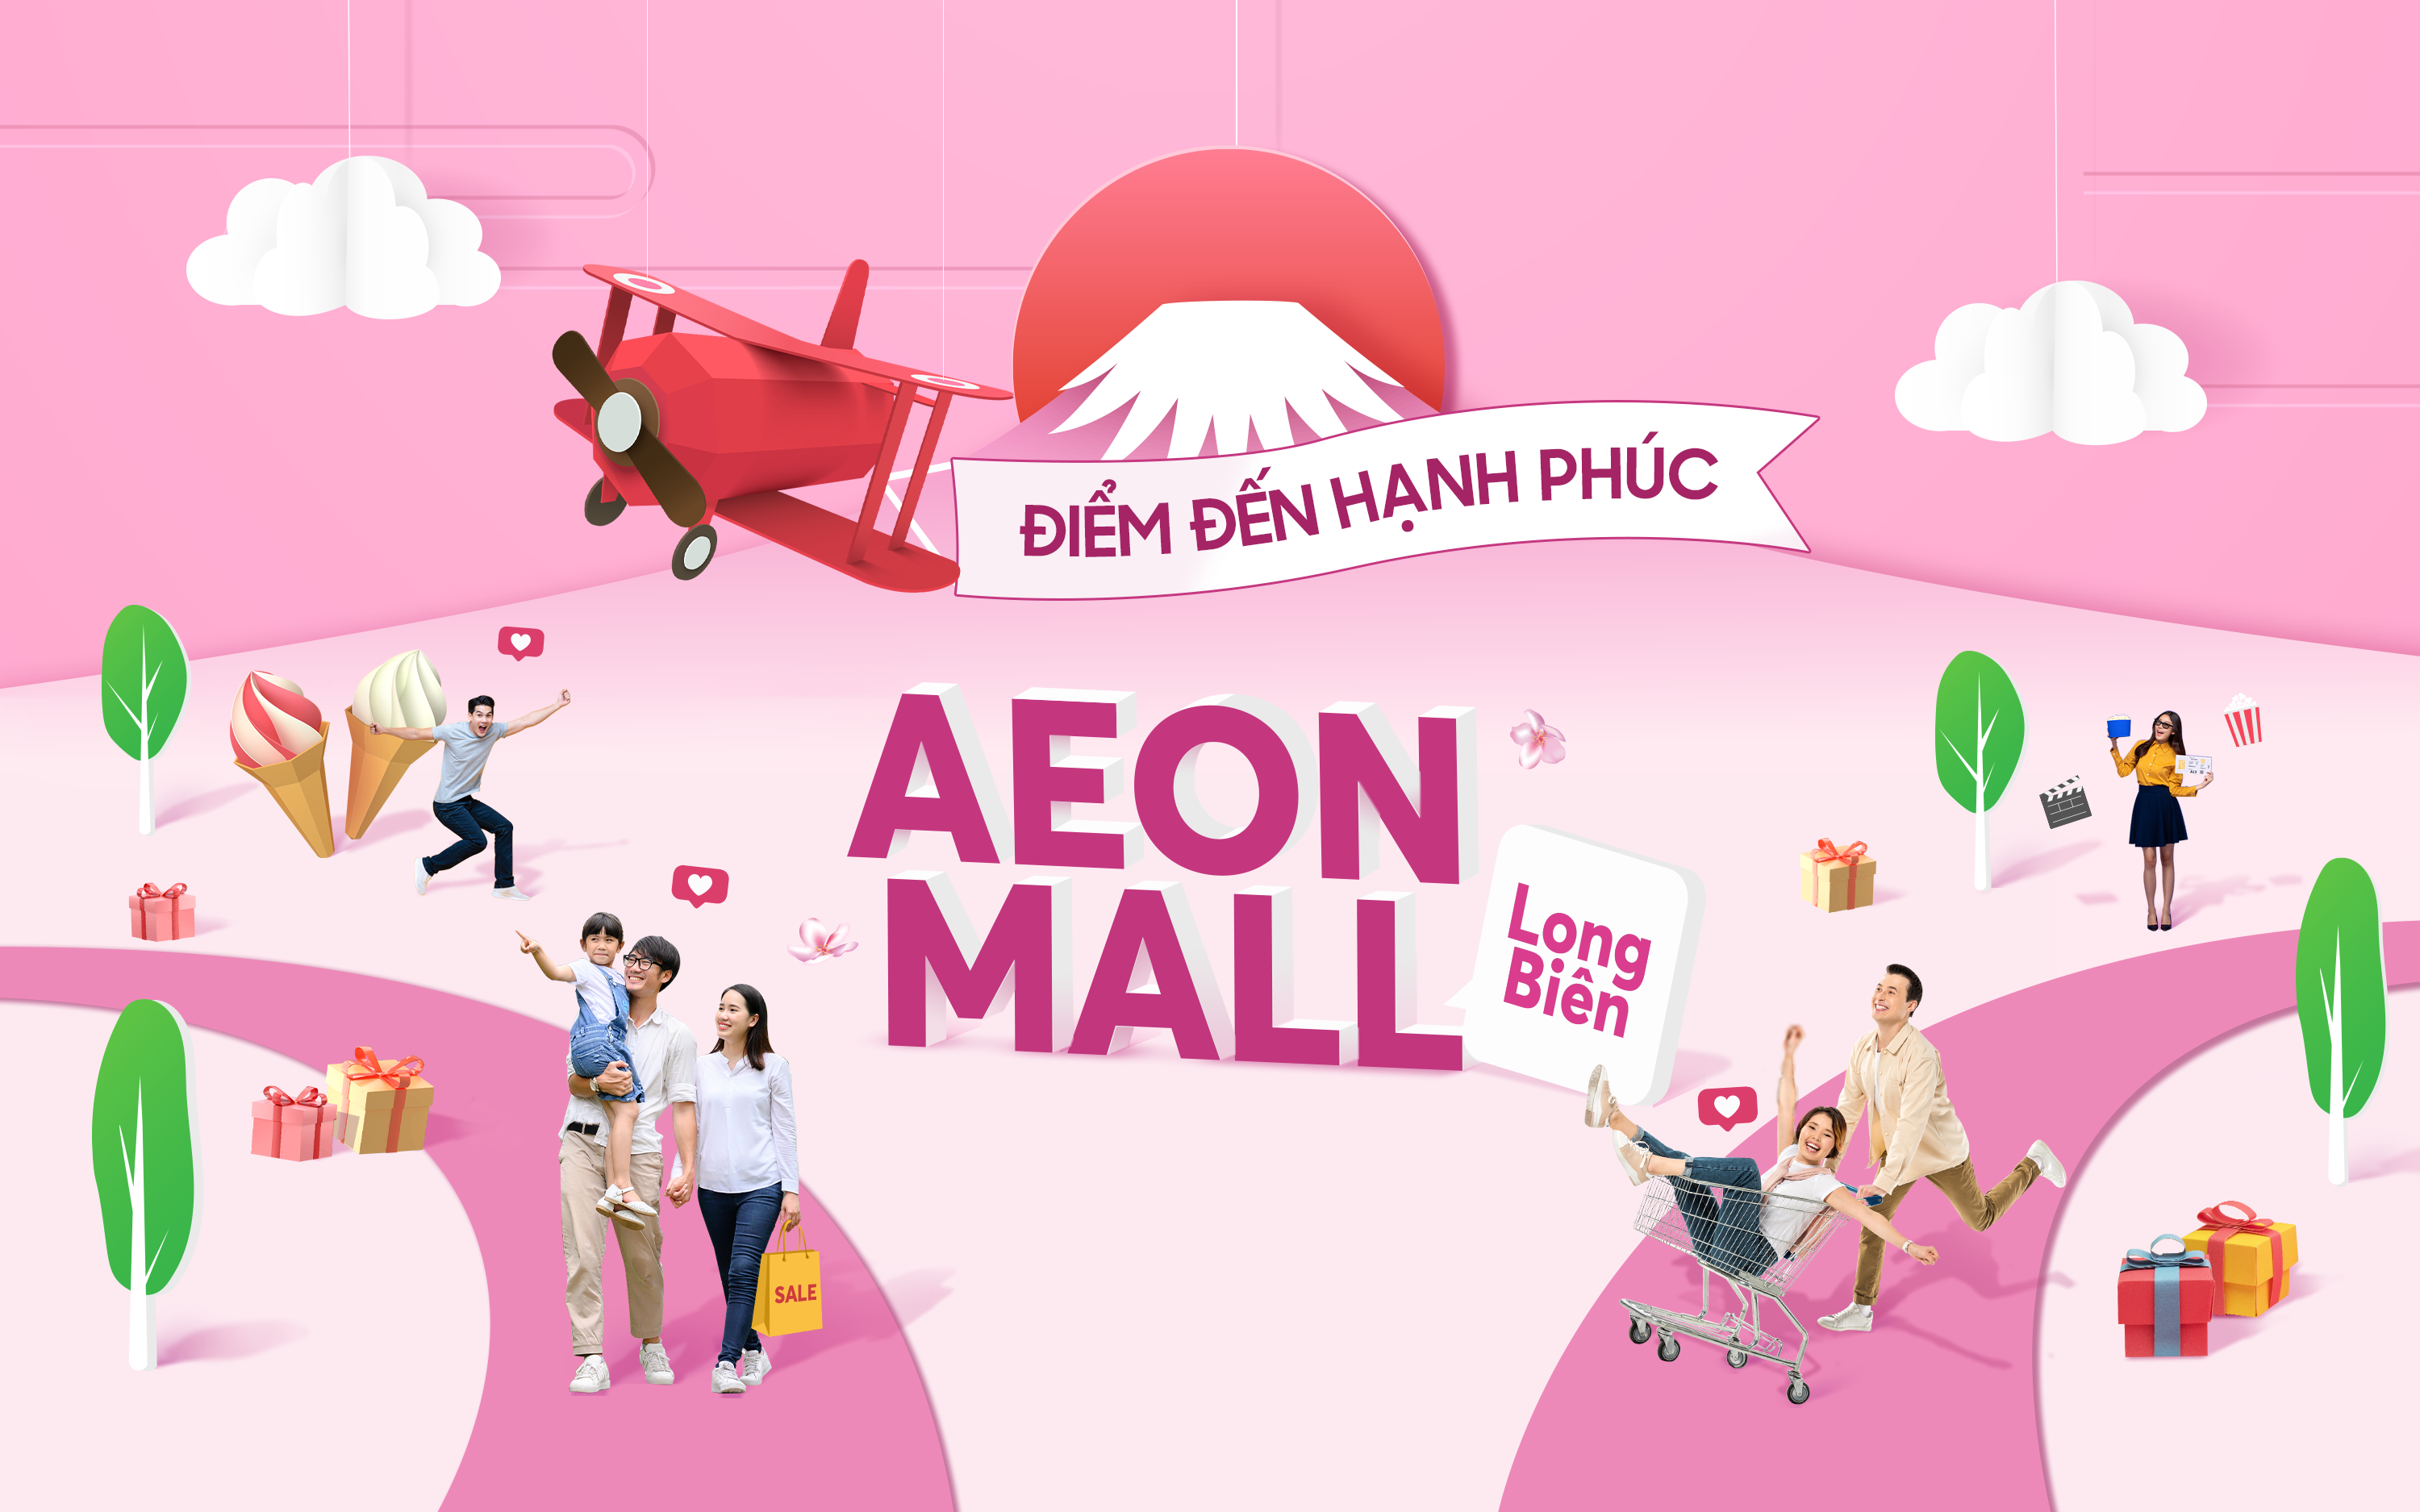 AEON MALL Long Bien - The Happy Mall